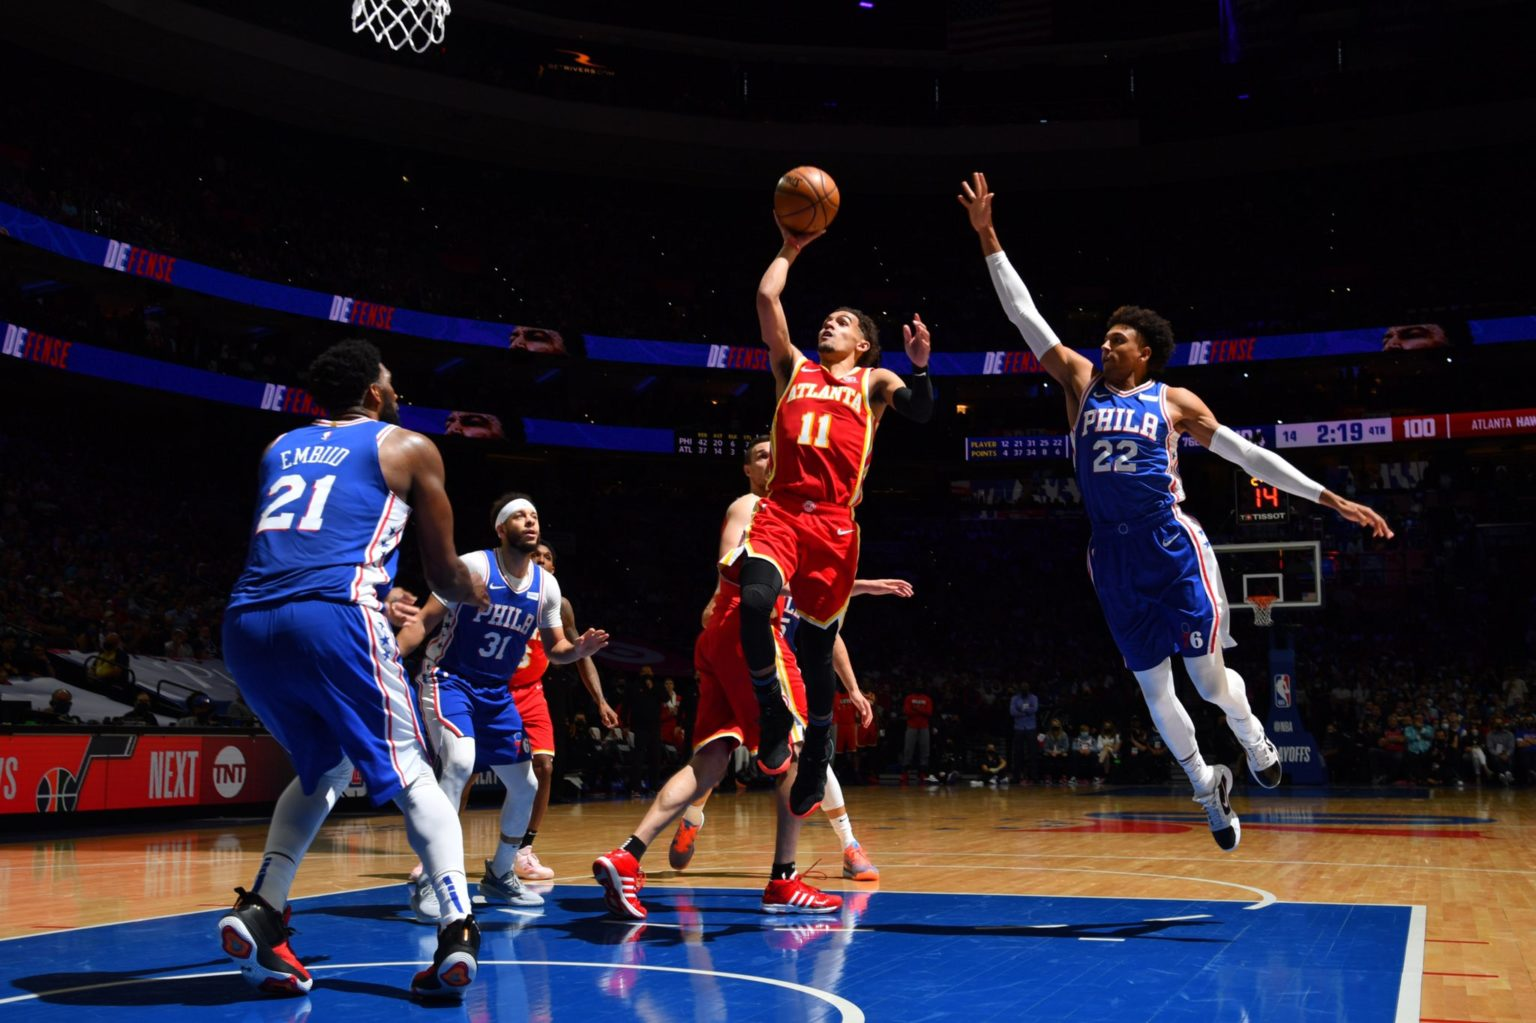 NBA-Playoffs- Hawks at 76ers game 7 betting preview. Win or go home!